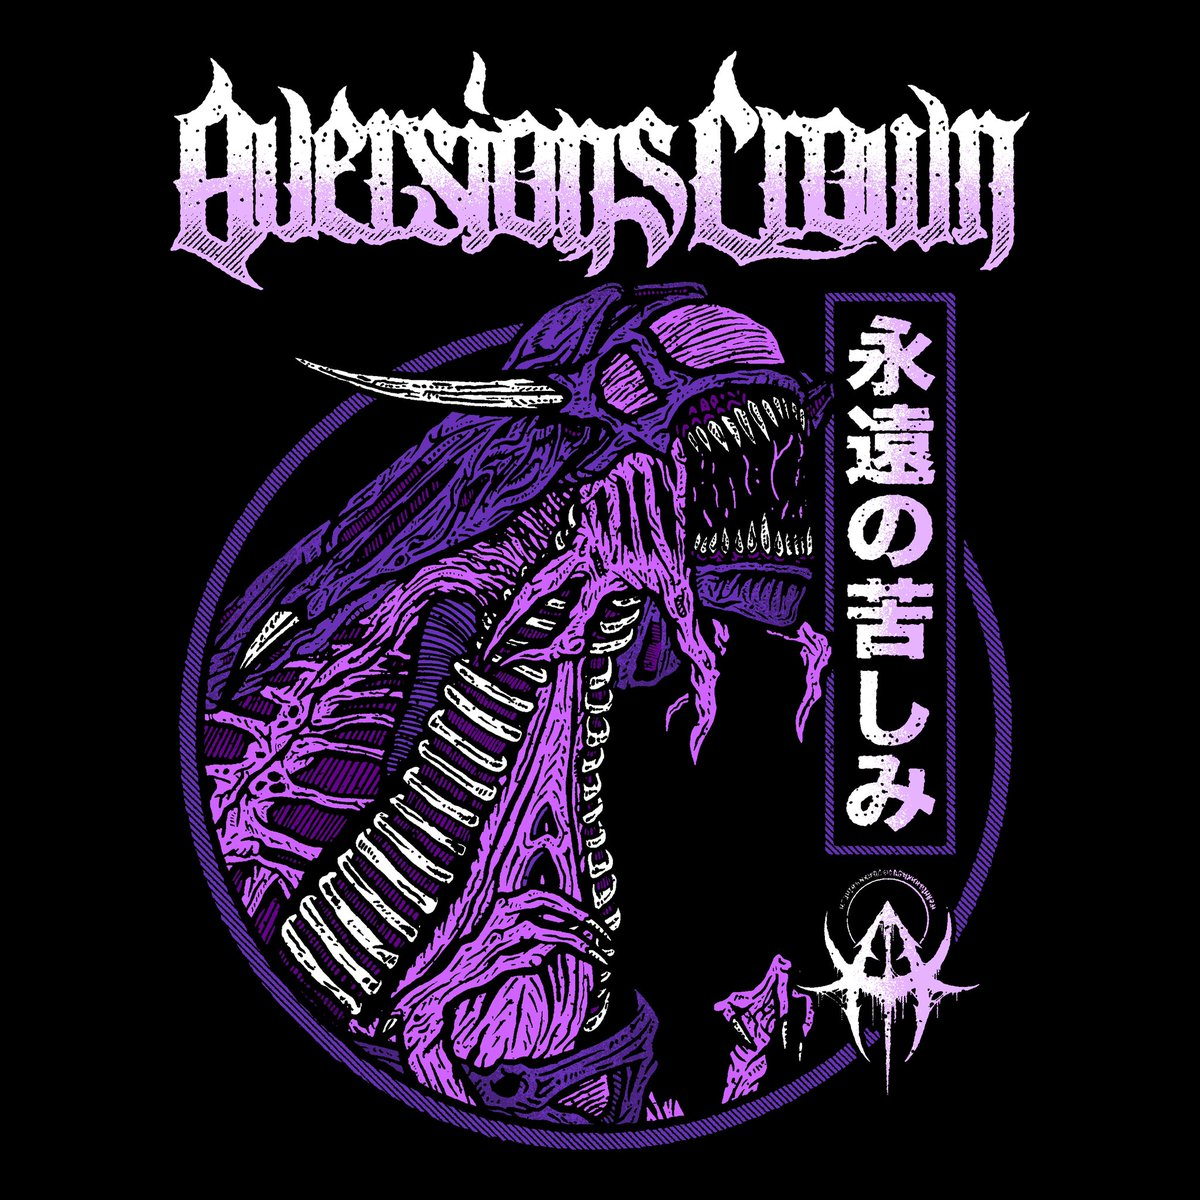 Another ☝🏼 for Aversions Crown  👽  http://halfjaw.com